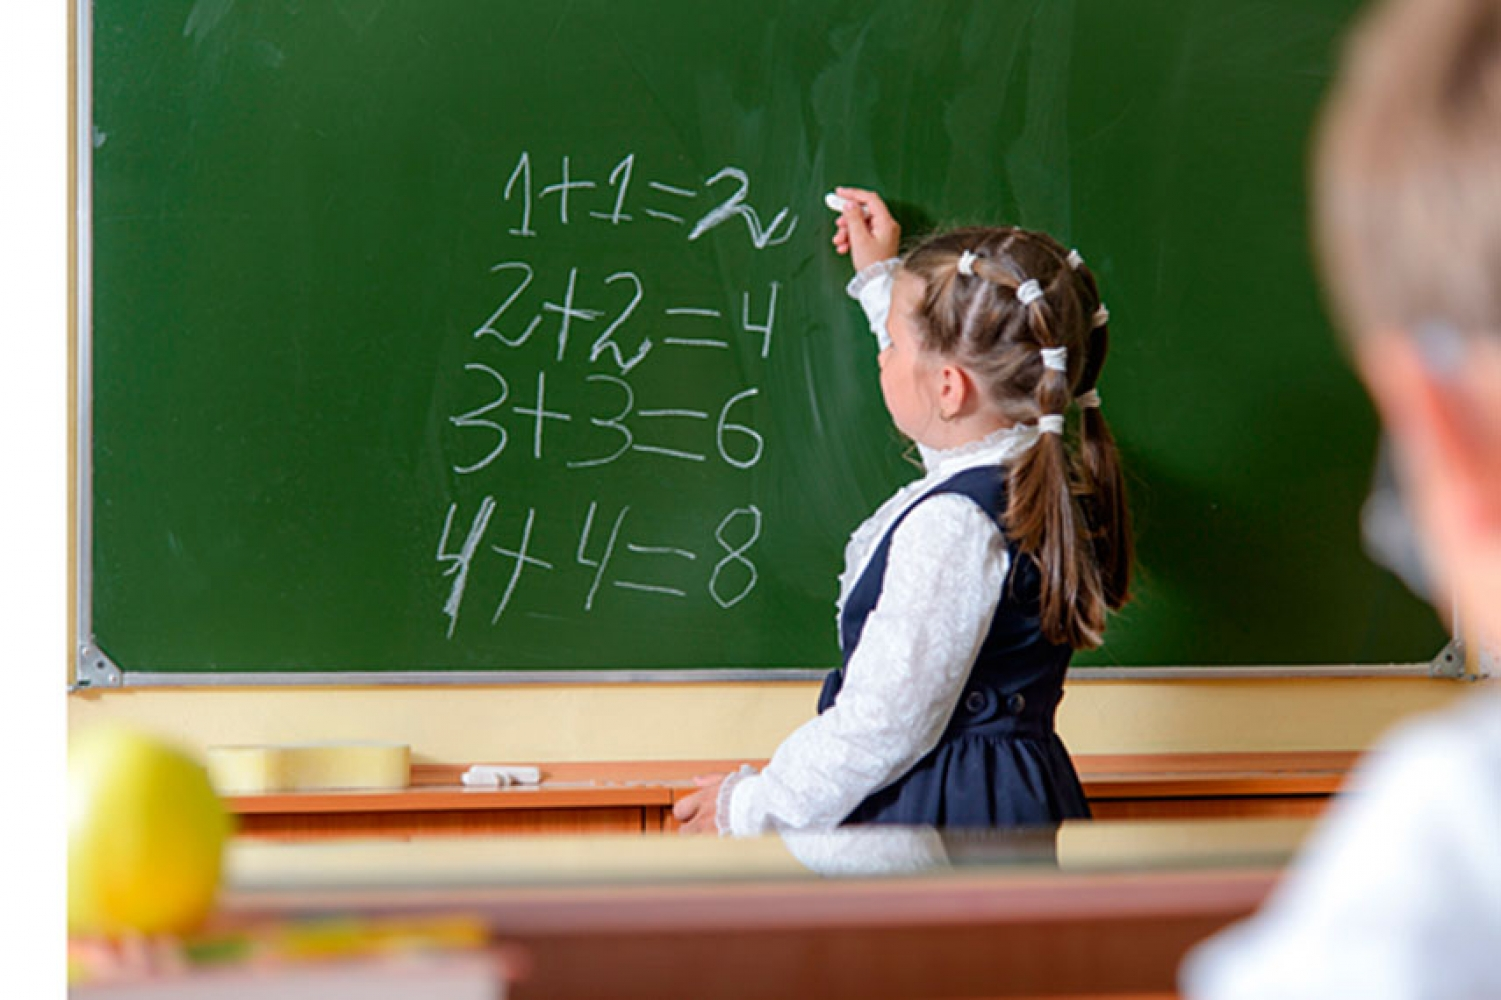 How can I get my child interested in learning math?